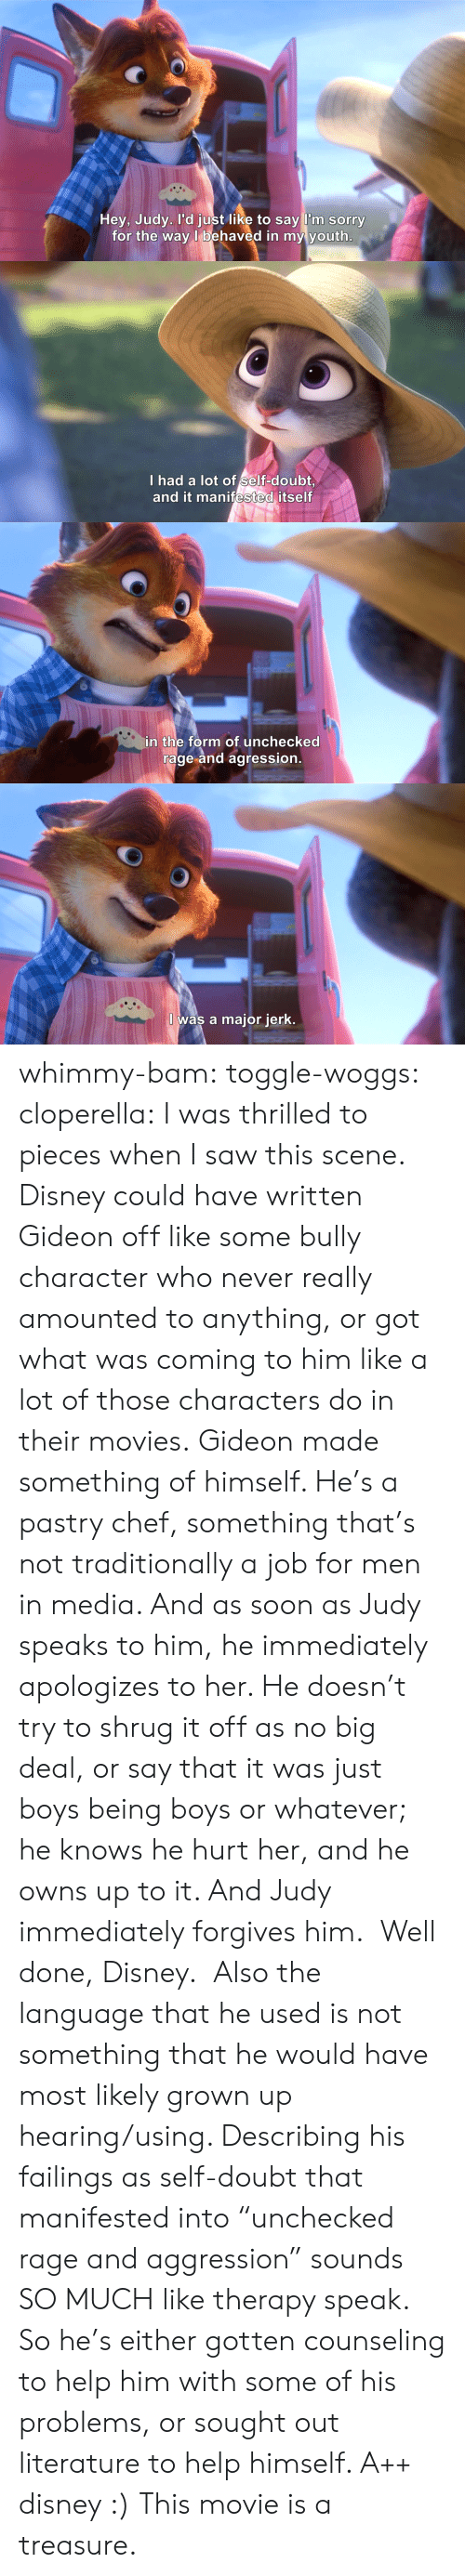 "Disney, Movies, and Saw: Hey, Judy. l'd just like to say  I'm sorry  for the way l behaved in my youth   I had a lot of self-doubt  and it manifested itself   in the form of unchecked  rage and agression   I was a major jerk. whimmy-bam: toggle-woggs:  cloperella:  I was thrilled to pieces when I saw this scene. Disney could have written Gideon off like some bully character who never really amounted to anything, or got what was coming to him like a lot of those characters do in their movies. Gideon made something of himself. He's a pastry chef, something that's not traditionally a job for men in media. And as soon as Judy speaks to him, he immediately apologizes to her. He doesn't try to shrug it off as no big deal, or say that it was just boys being boys or whatever; he knows he hurt her, and he owns up to it. And Judy immediately forgives him.  Well done, Disney.   Also the language that he used is not something that he would have most likely grown up hearing/using. Describing his failings as self-doubt that manifested into ""unchecked rage and aggression"" sounds SO MUCH like therapy speak. So he's either gotten counseling to help him with some of his problems, or sought out literature to help himself. A++ disney :)  This movie is a treasure."